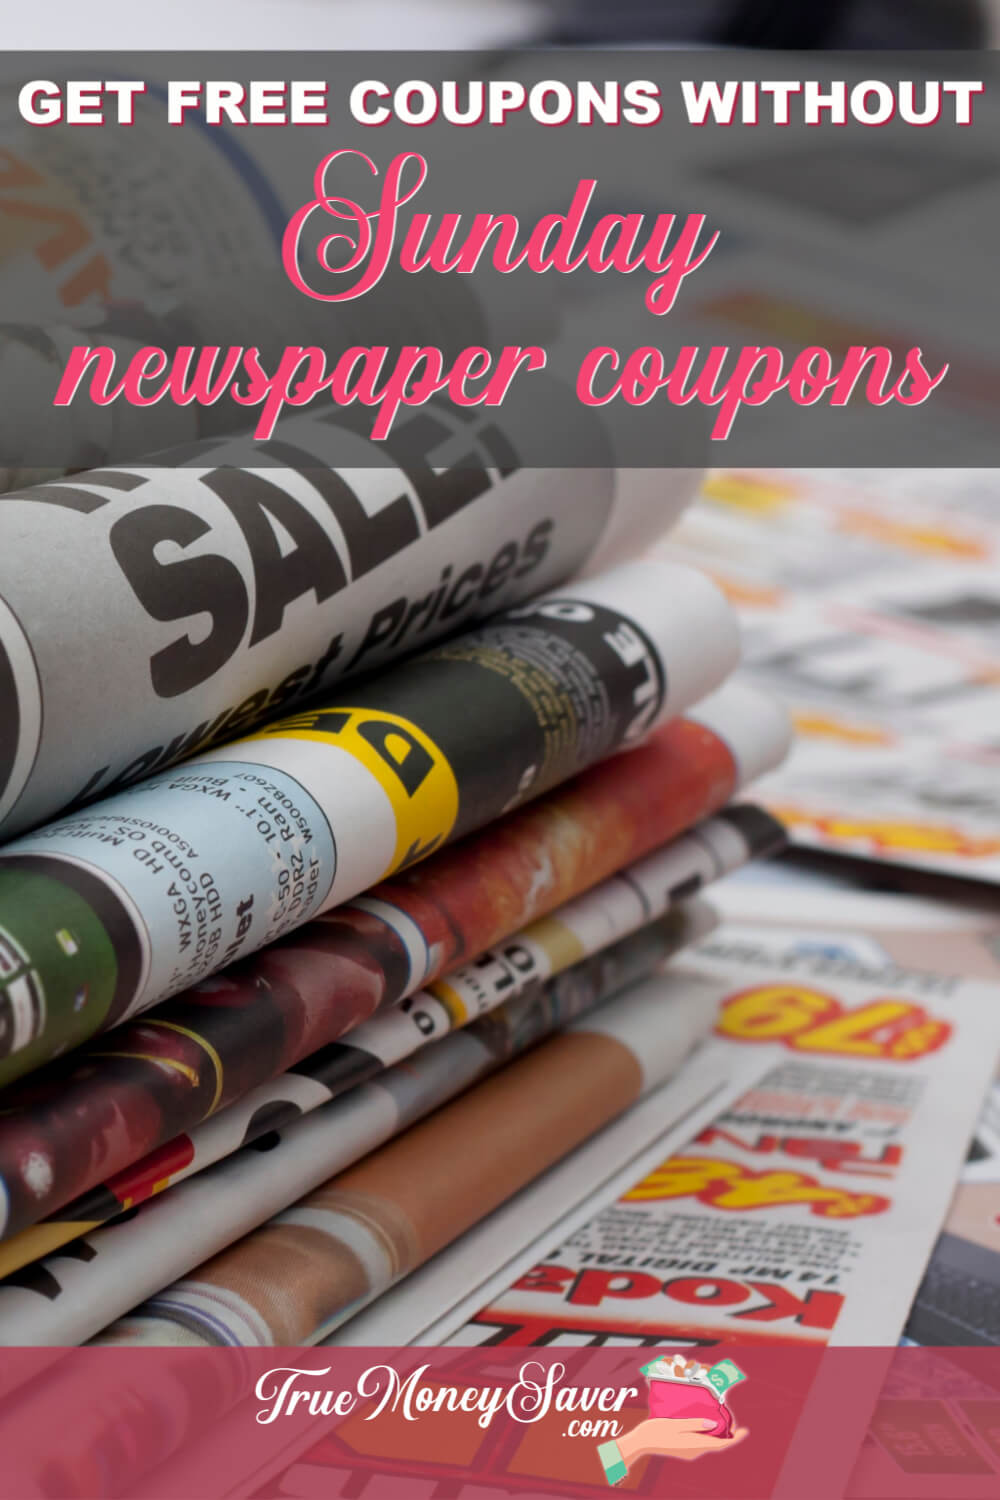 How To Get FREE Coupons Without The Sunday Newspaper Coupons